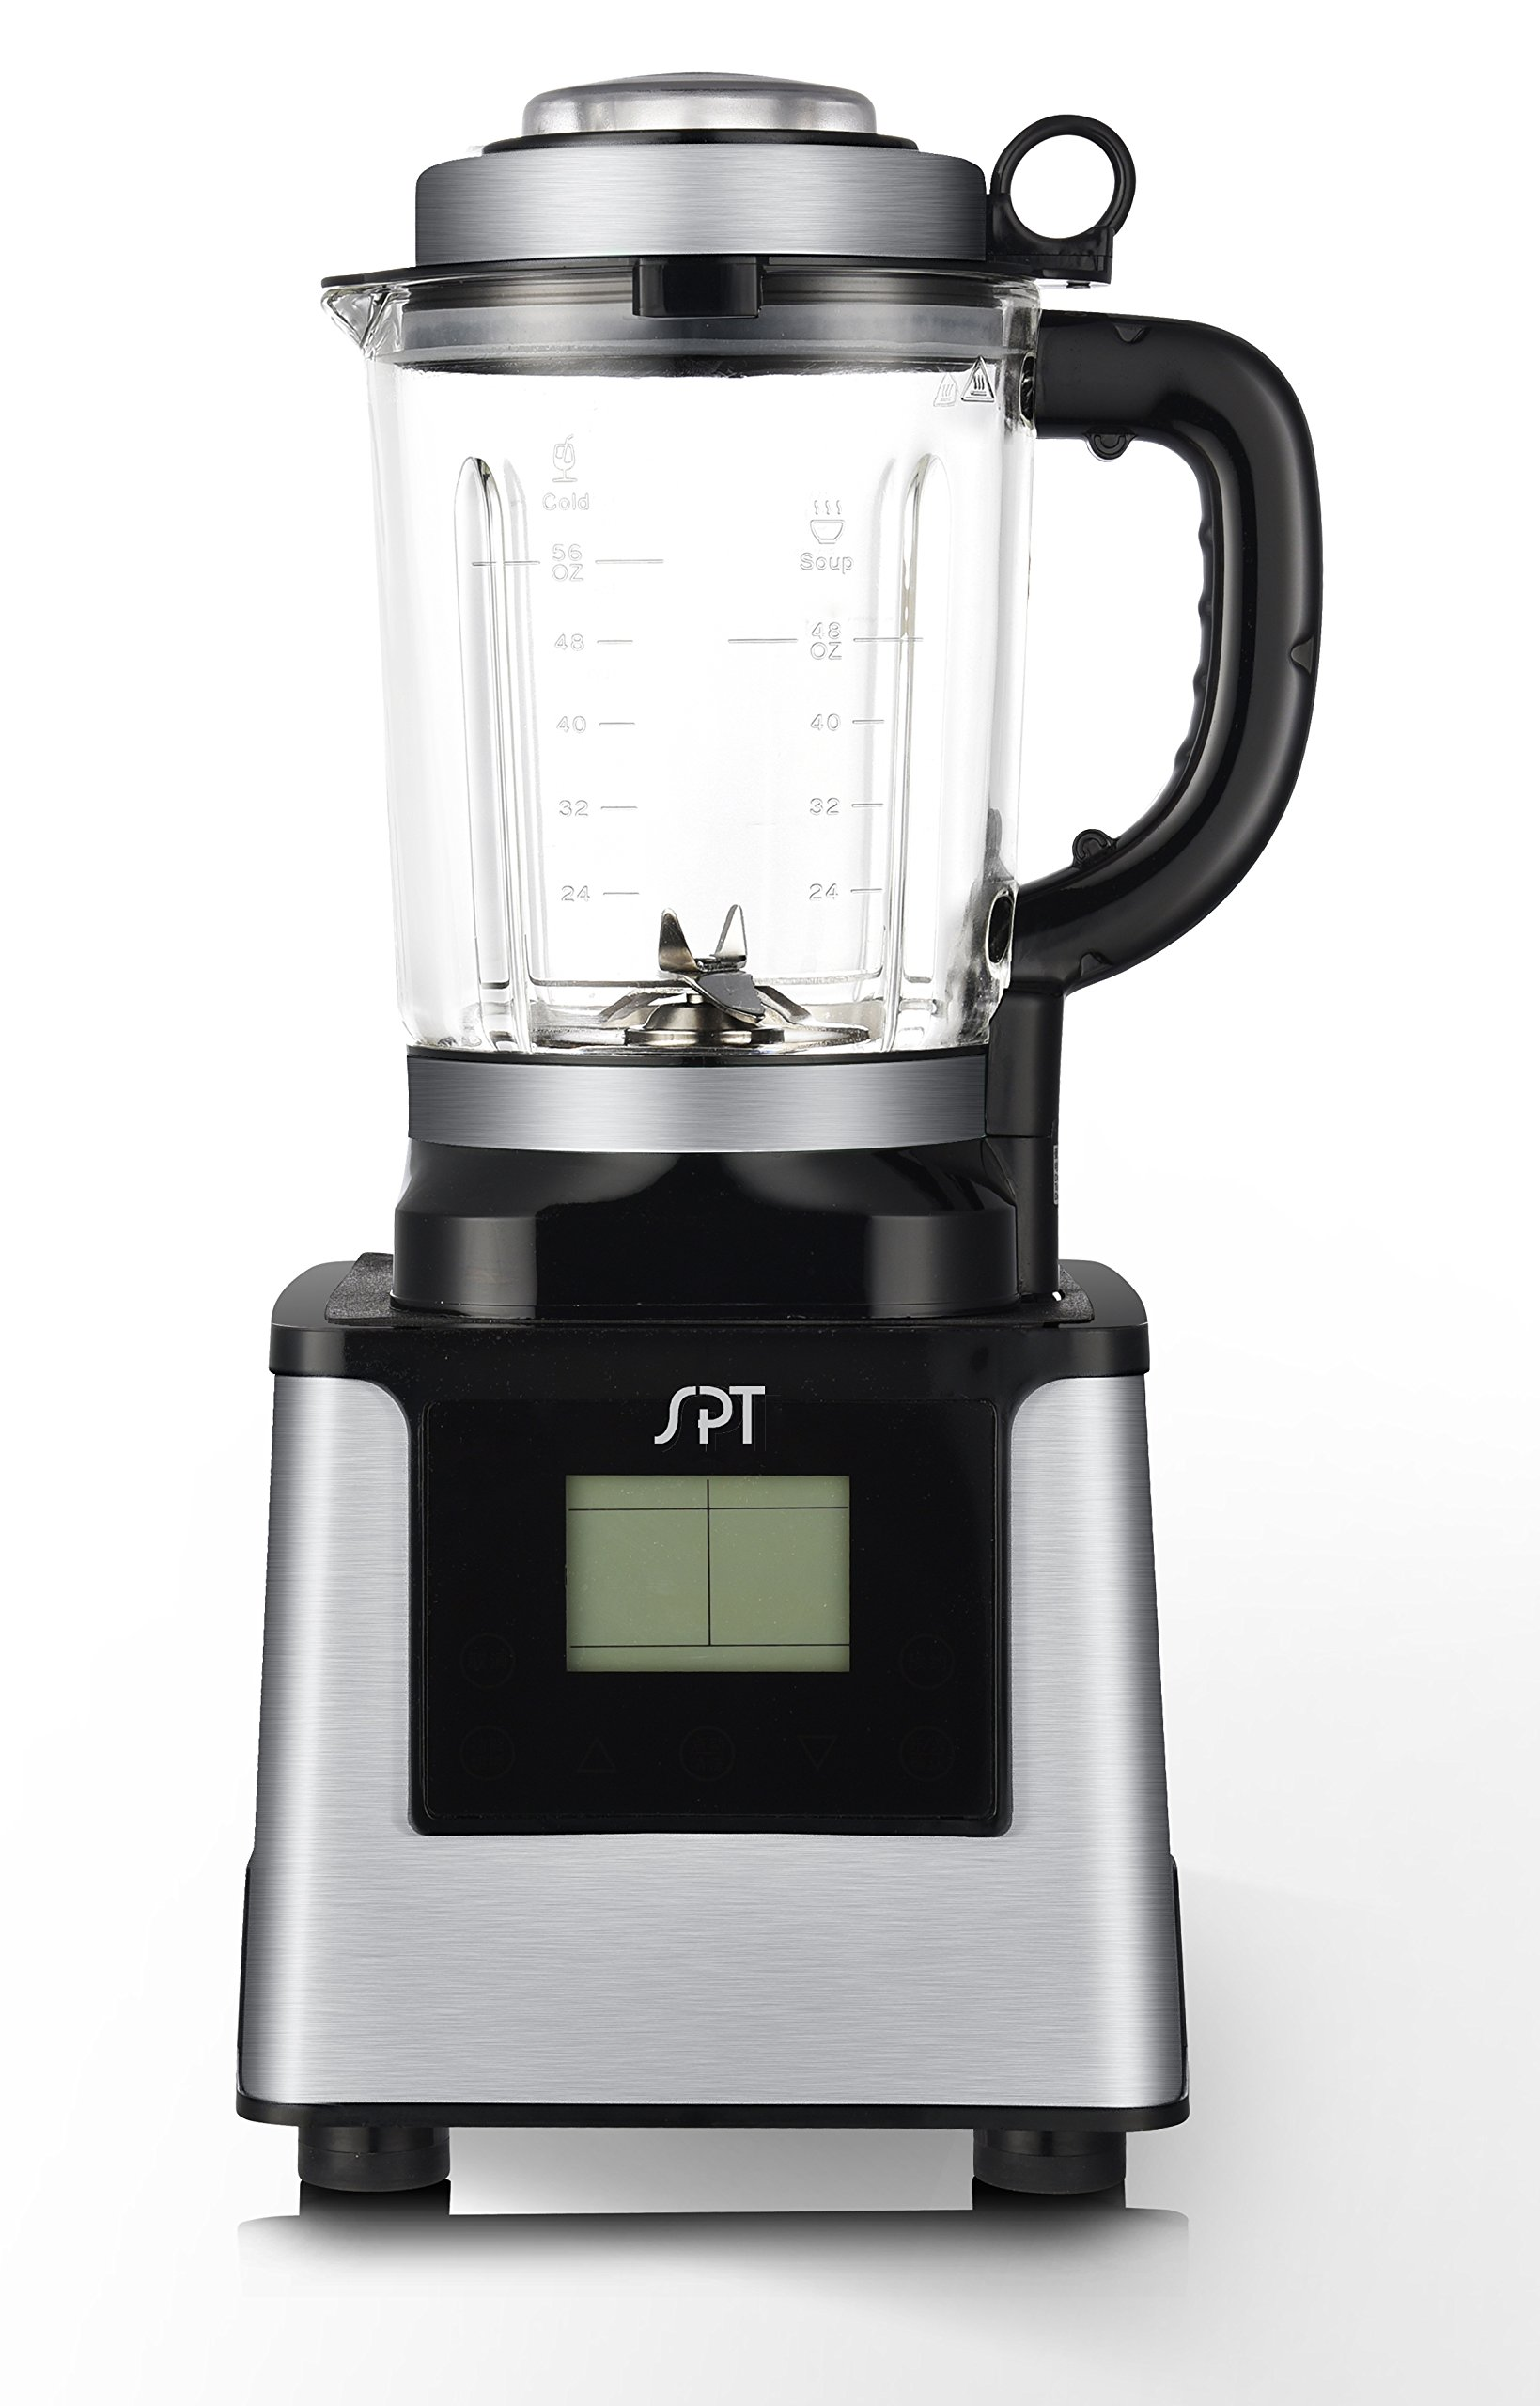 SPT CL-513 Multi-Functional Pulverizing Blender with Heating Element, , Stainless Steel